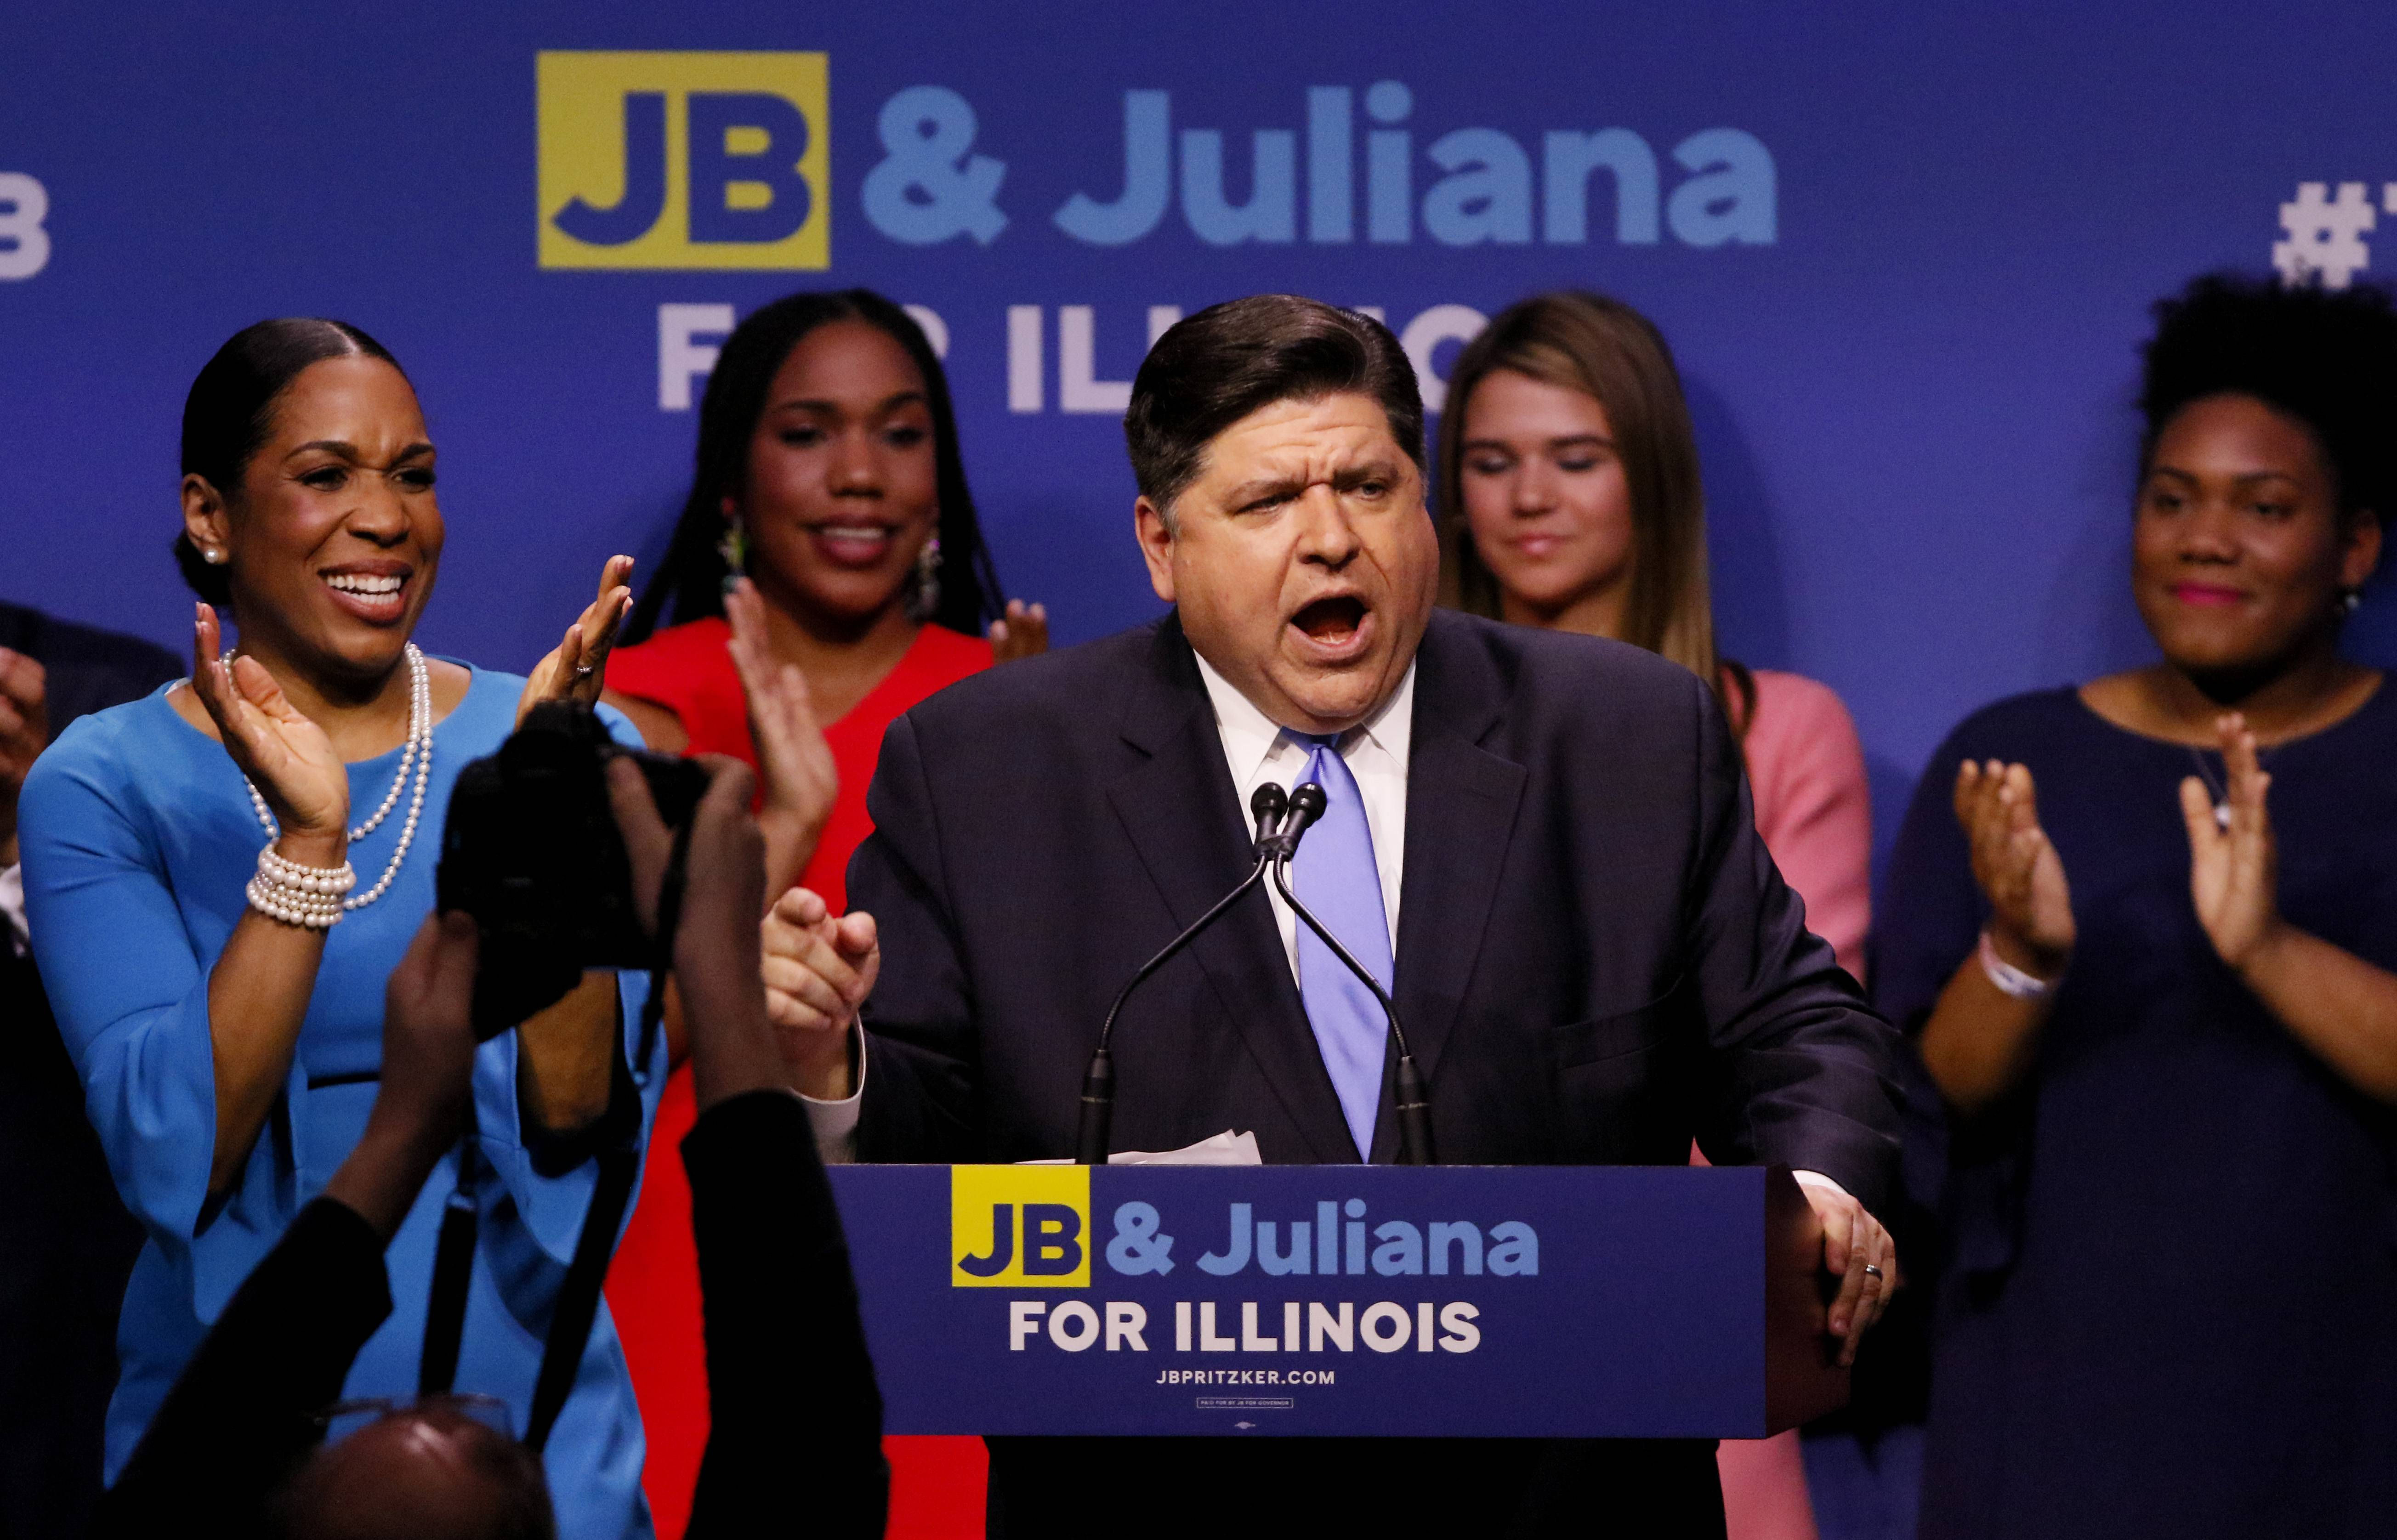 JB Pritzker is a candidate for Governor (Democratic primary, 4-year term).